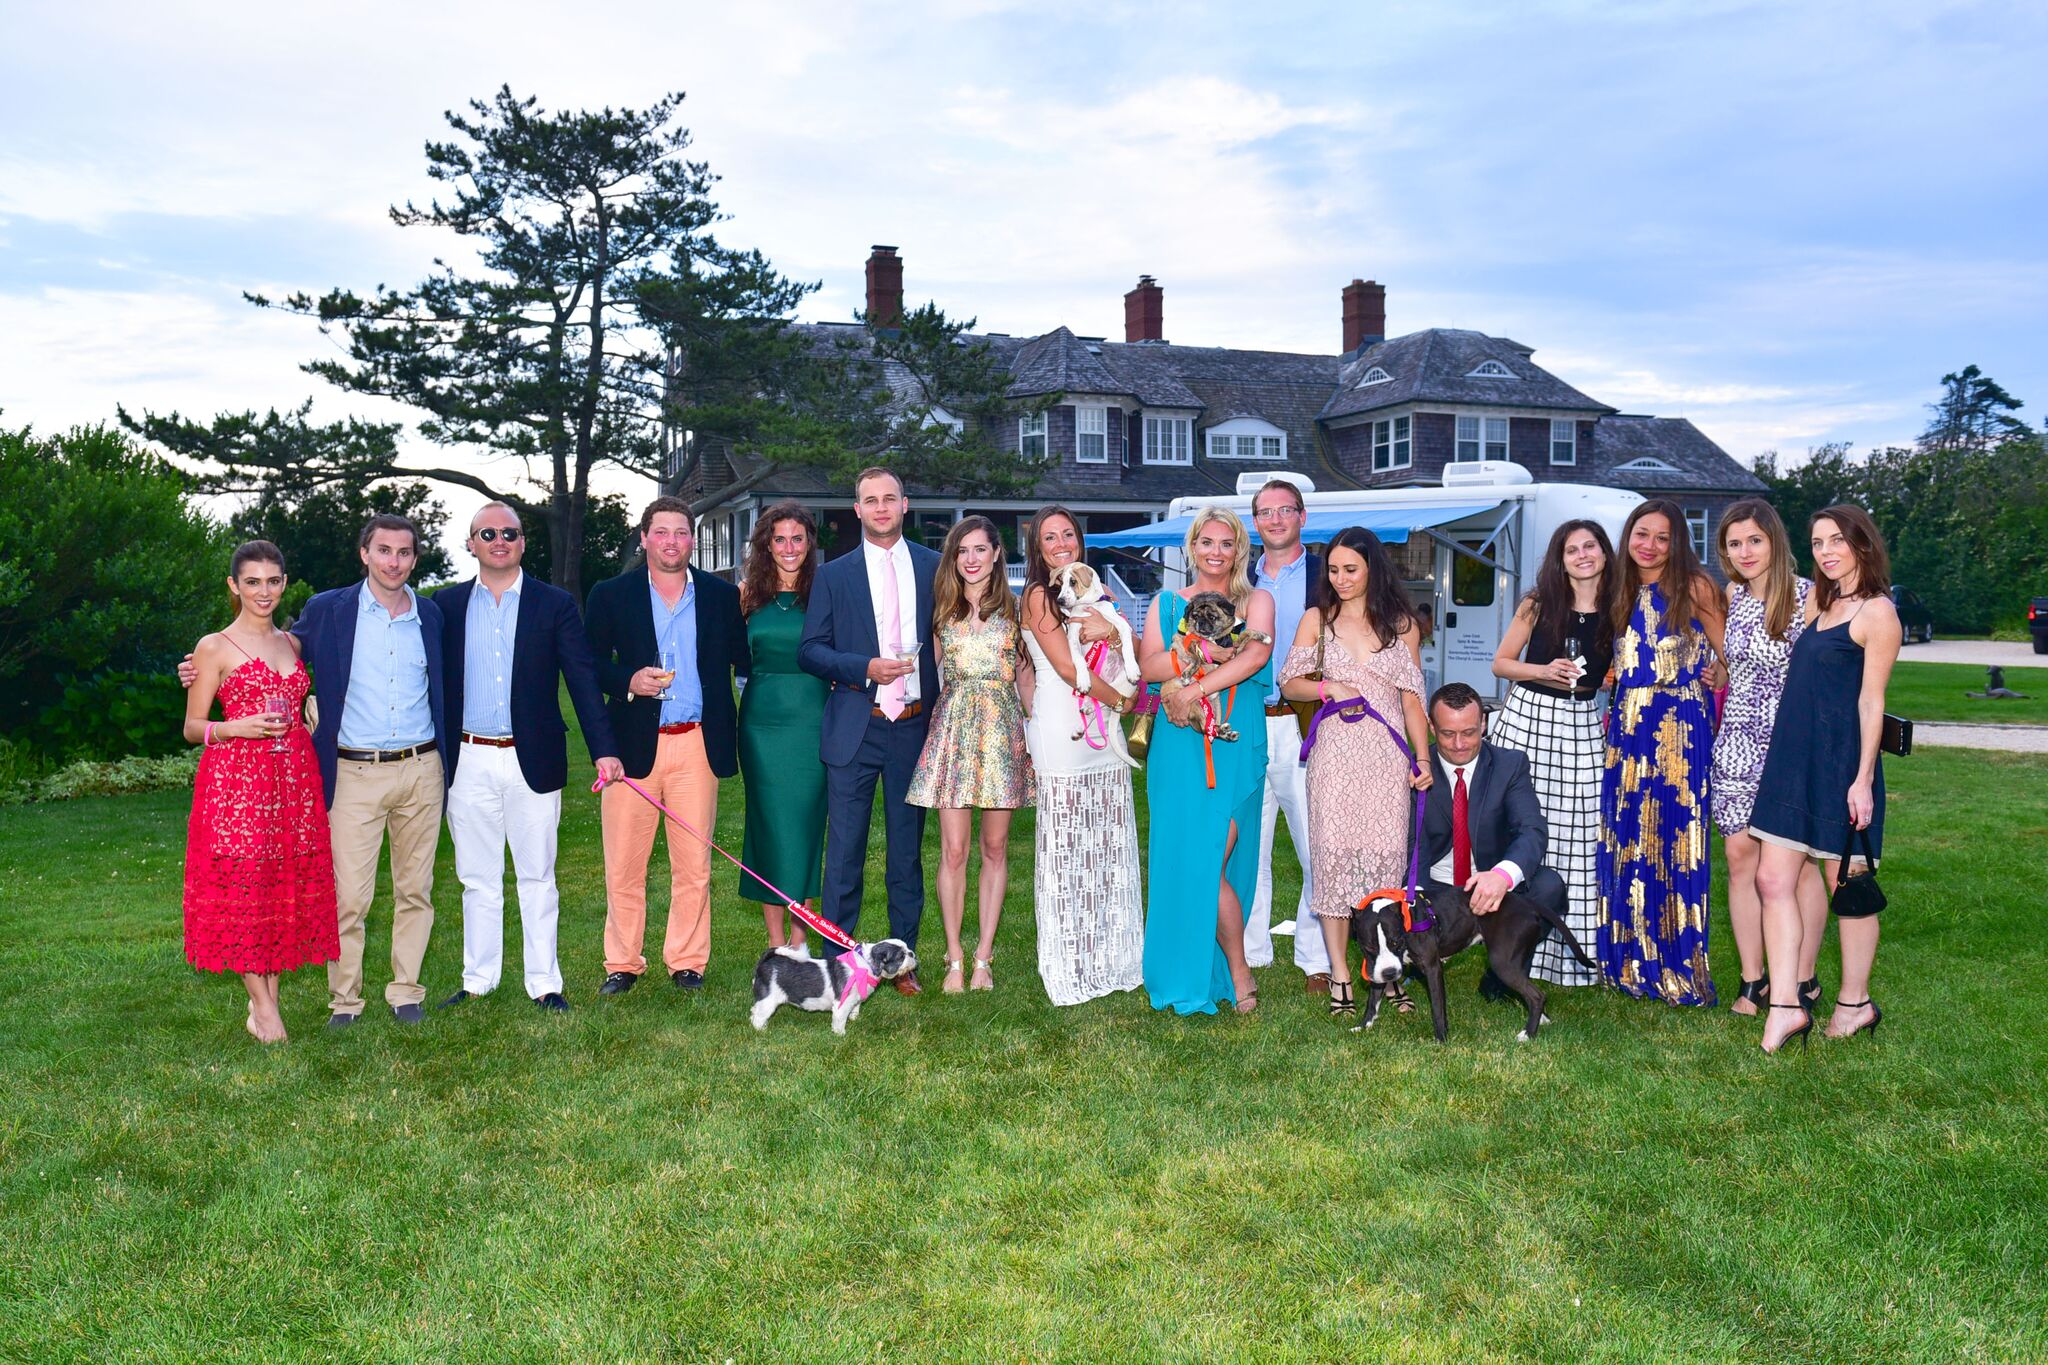 SOUTHAMPTON ANIMAL SHELTER FOUNDATION'S 7TH ANNUAL UNCONDITIONAL LOVE GALA